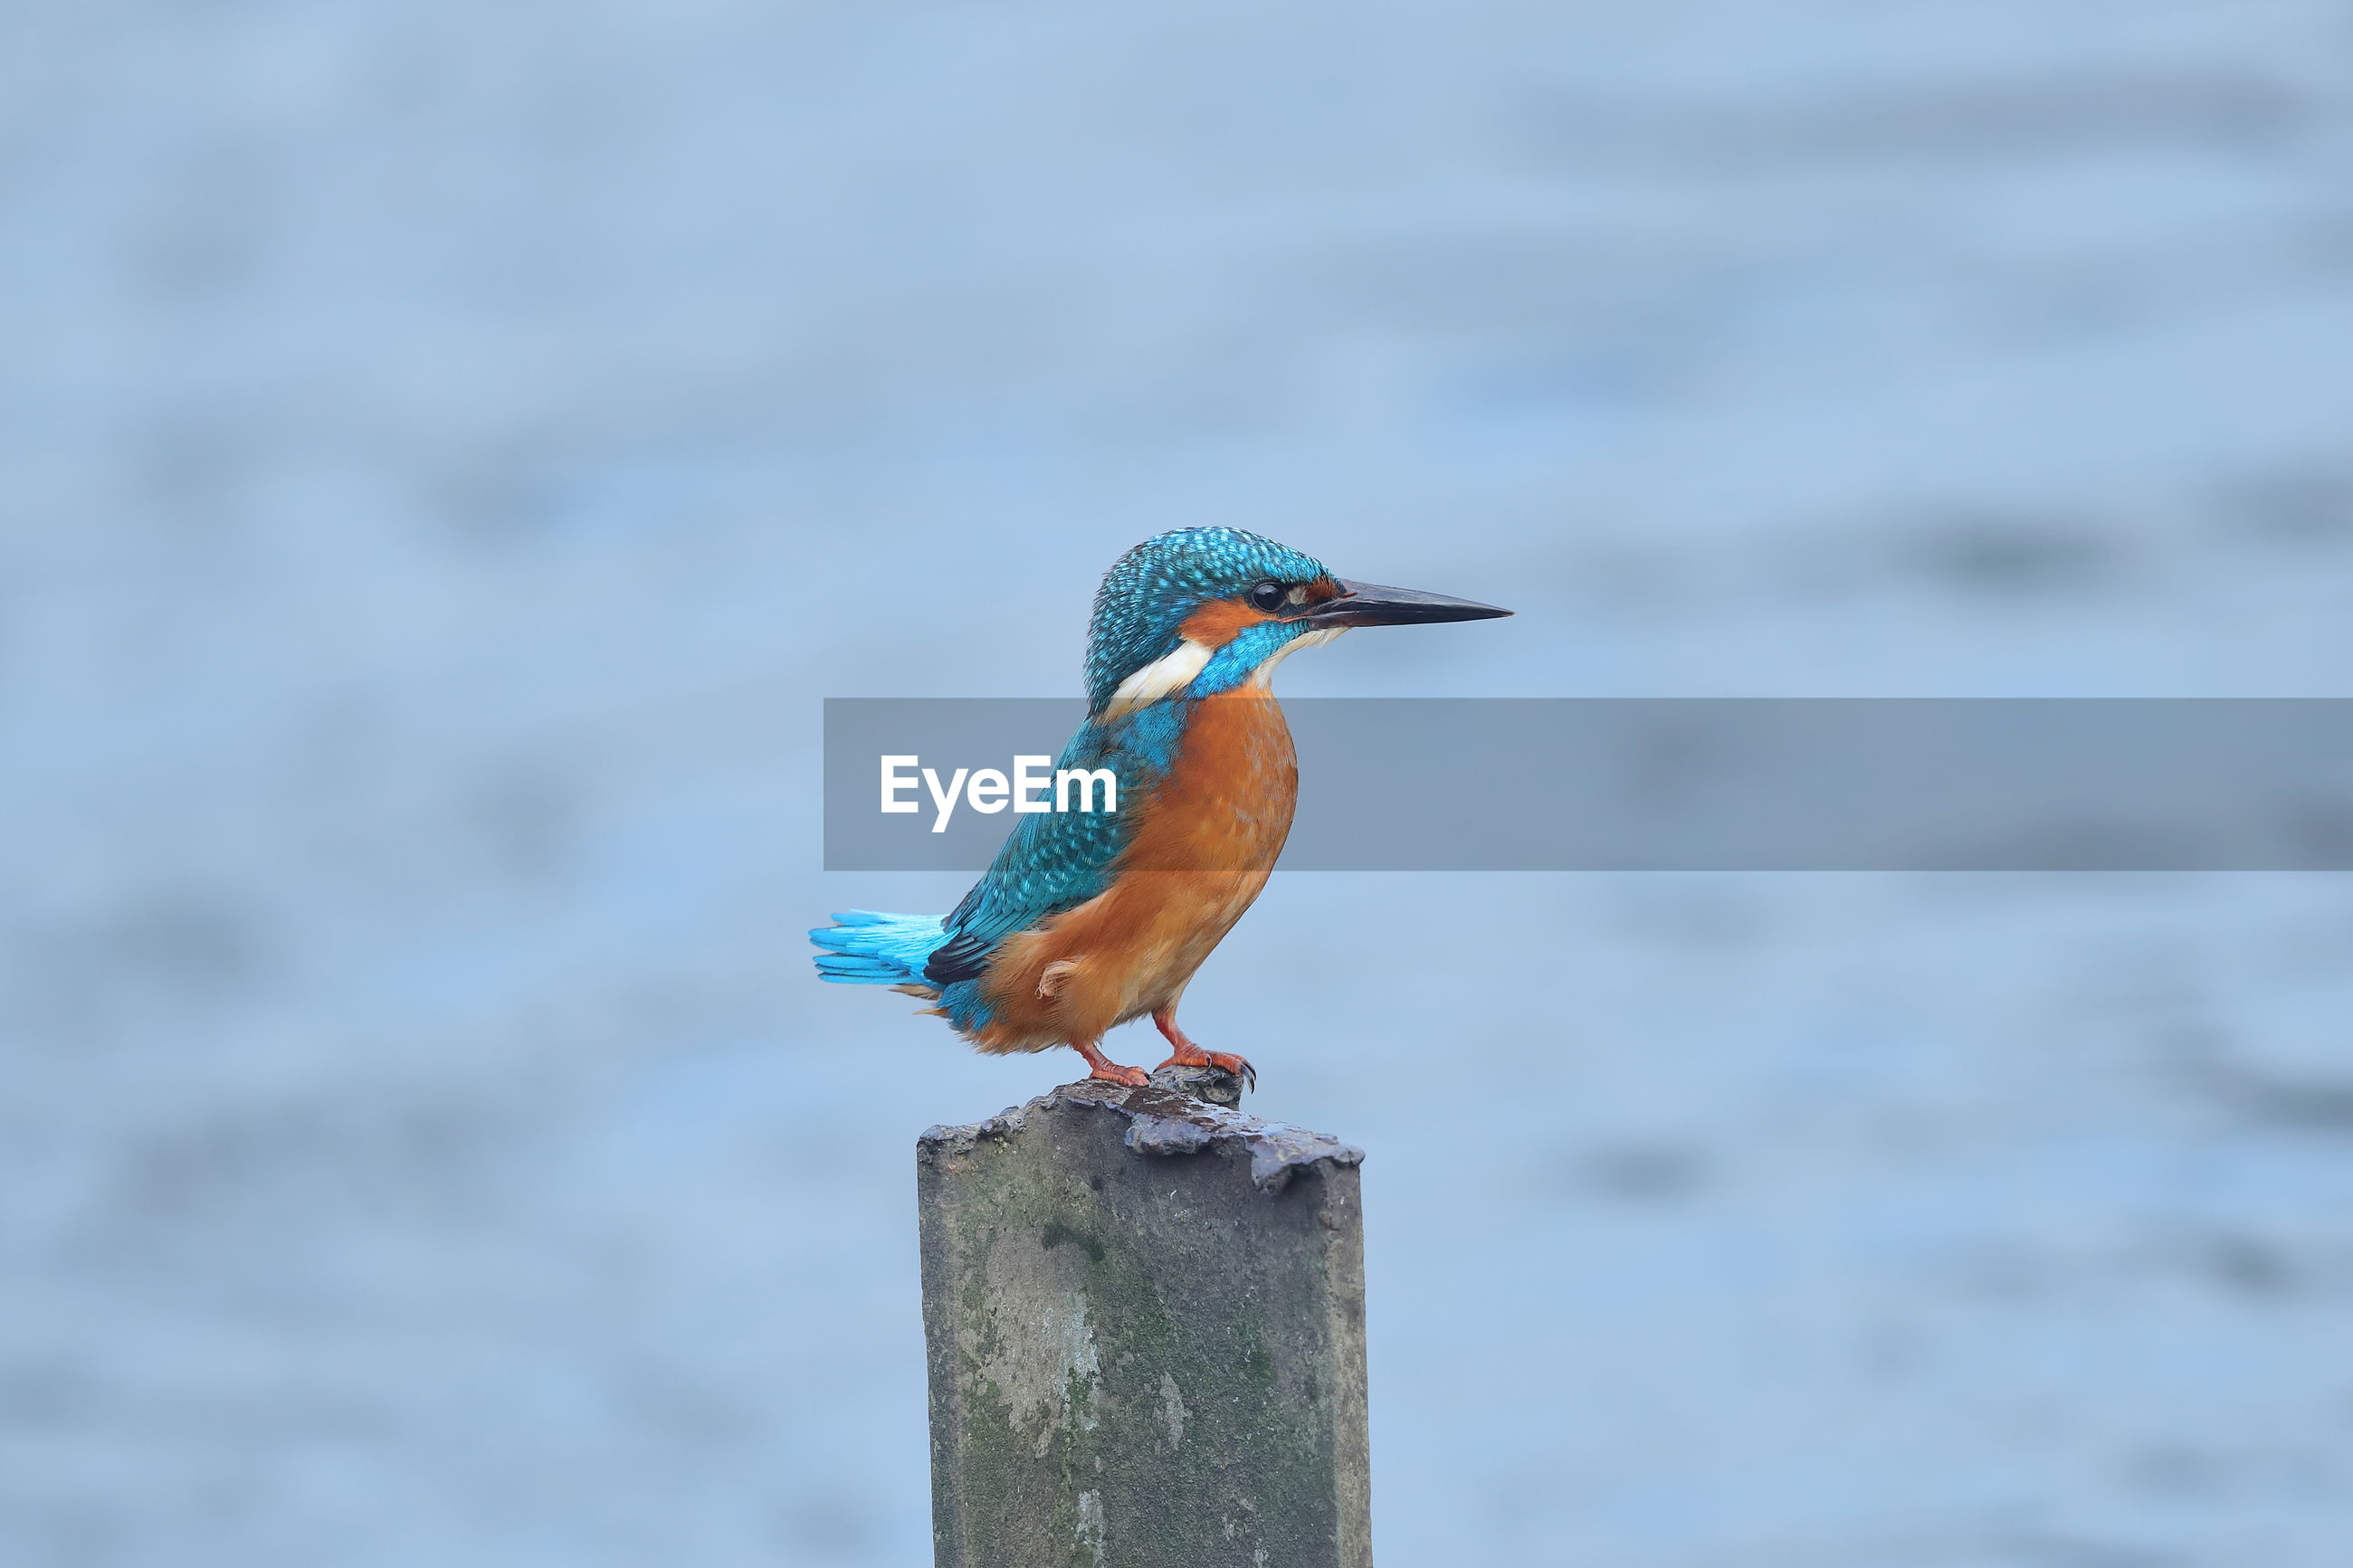 a common kingfisher on a post